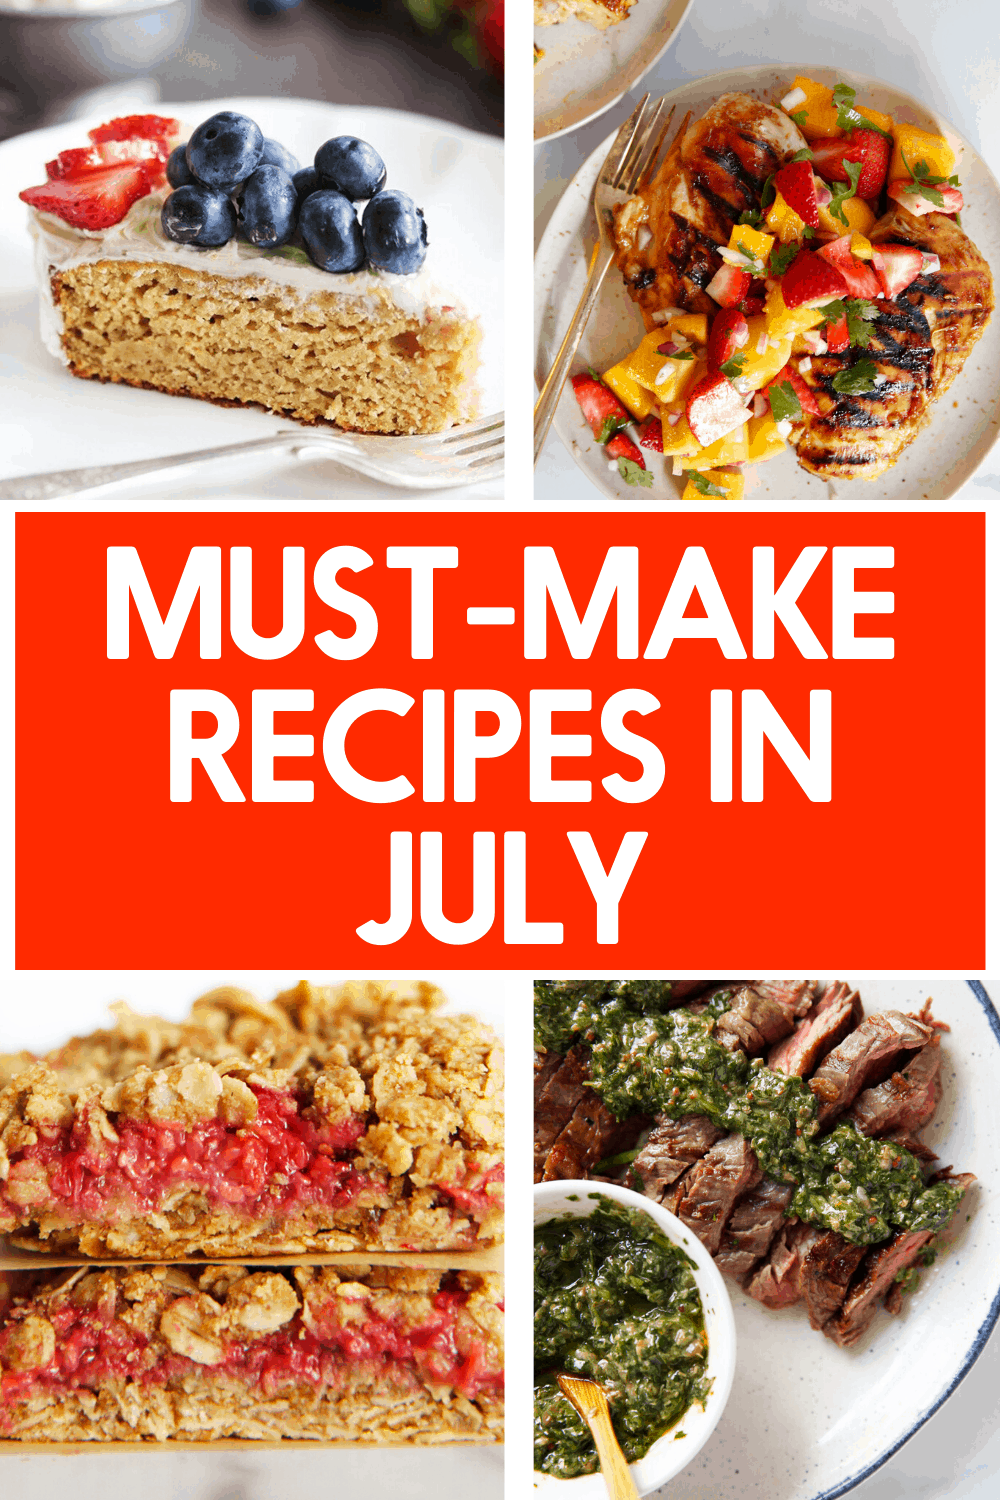 Must make recipes in July